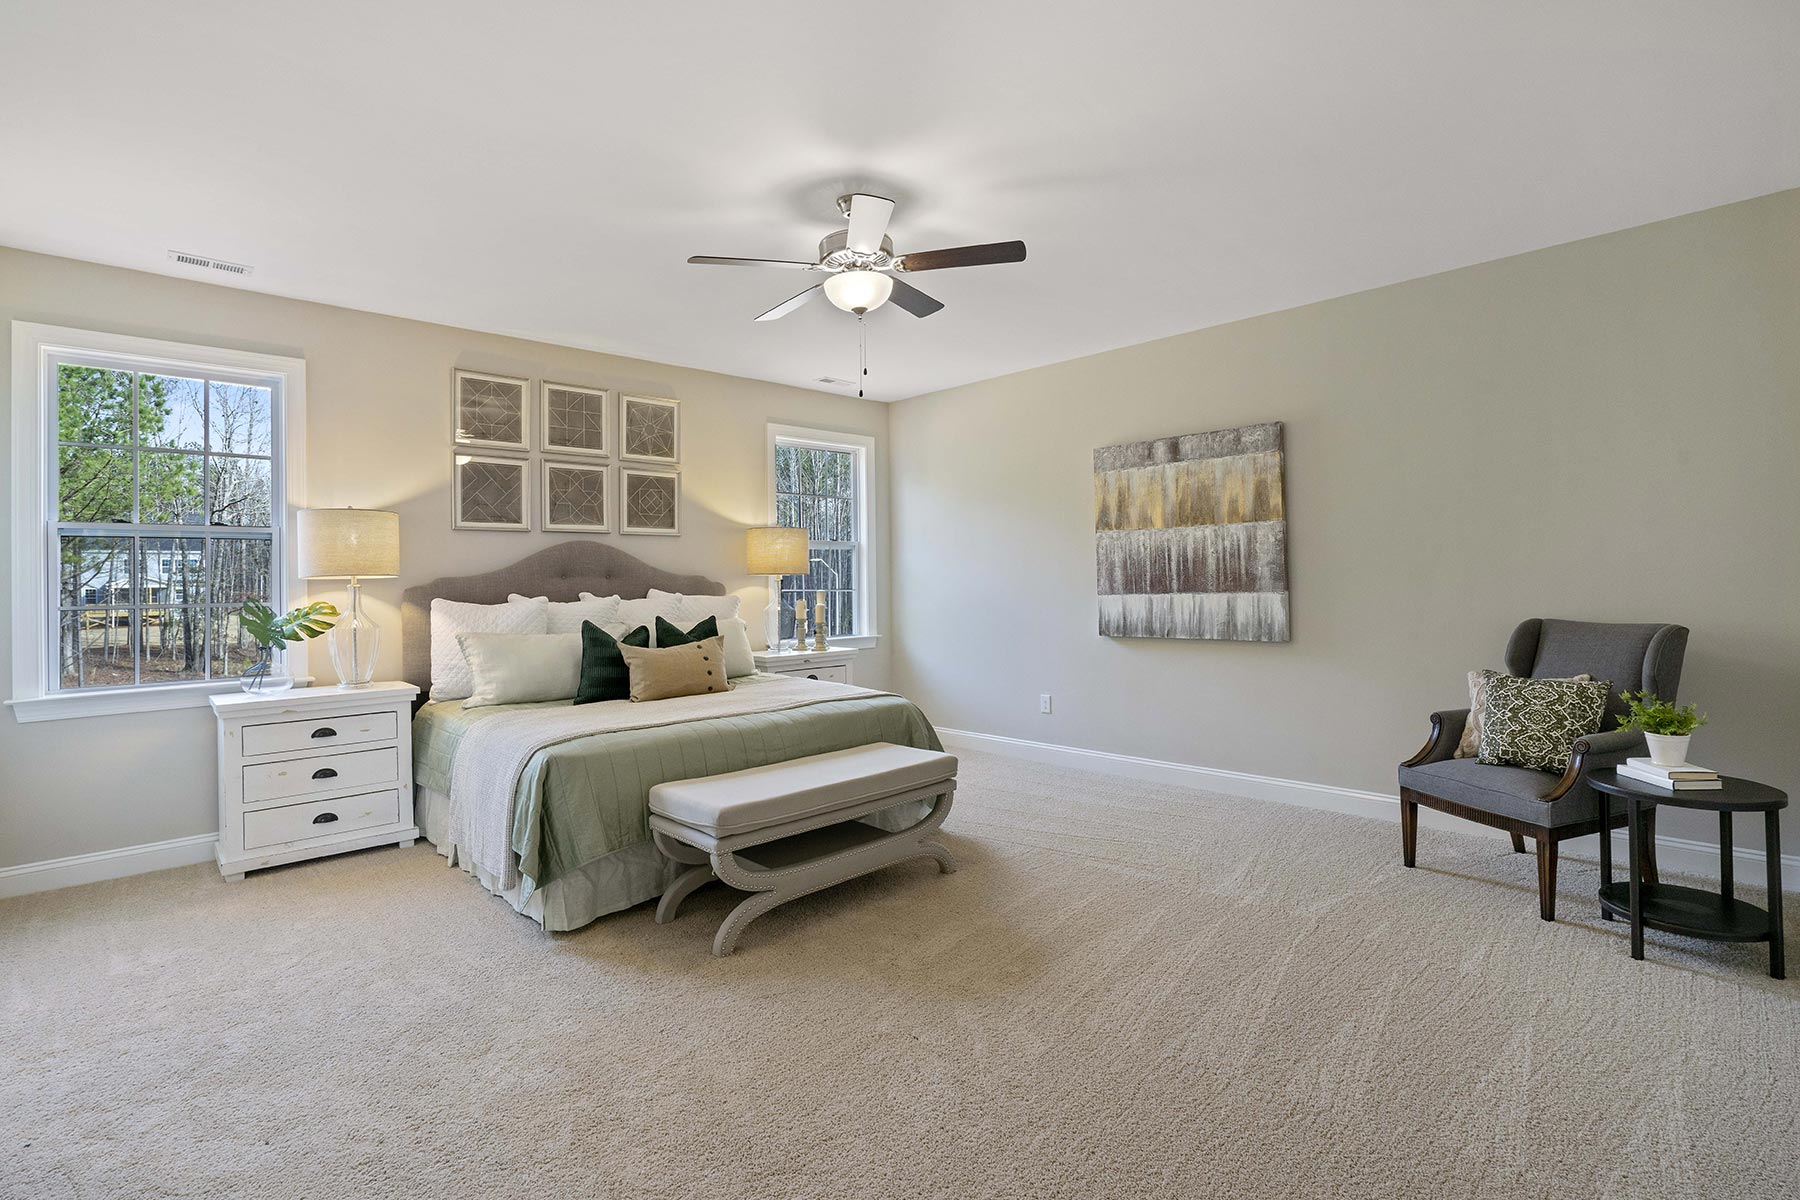 Juniper Plan Bedroom at Ballentine Place in Holly Springs North Carolina by Mattamy Homes